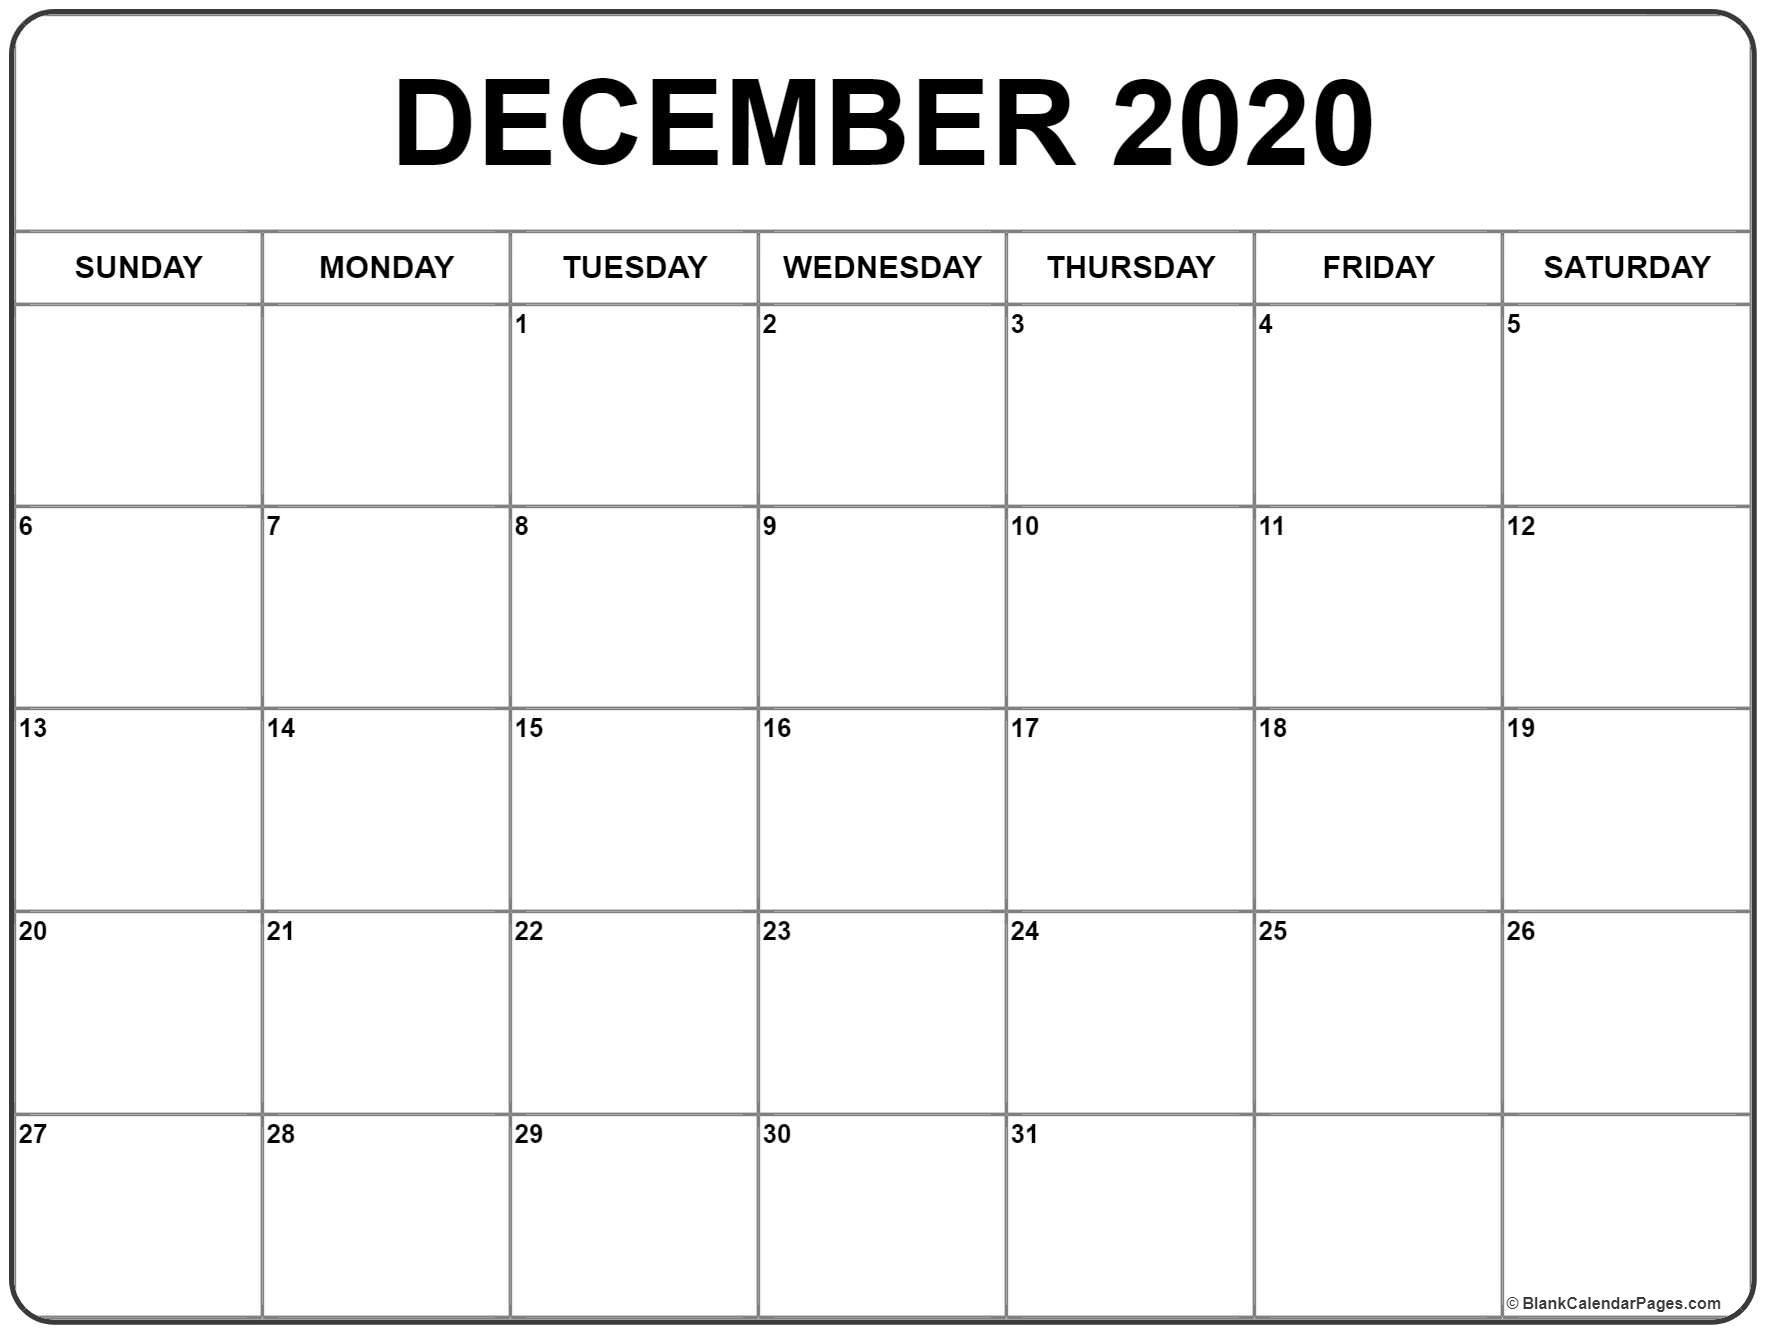 Free Printable Calendars December 2020 - Togo.wpart.co